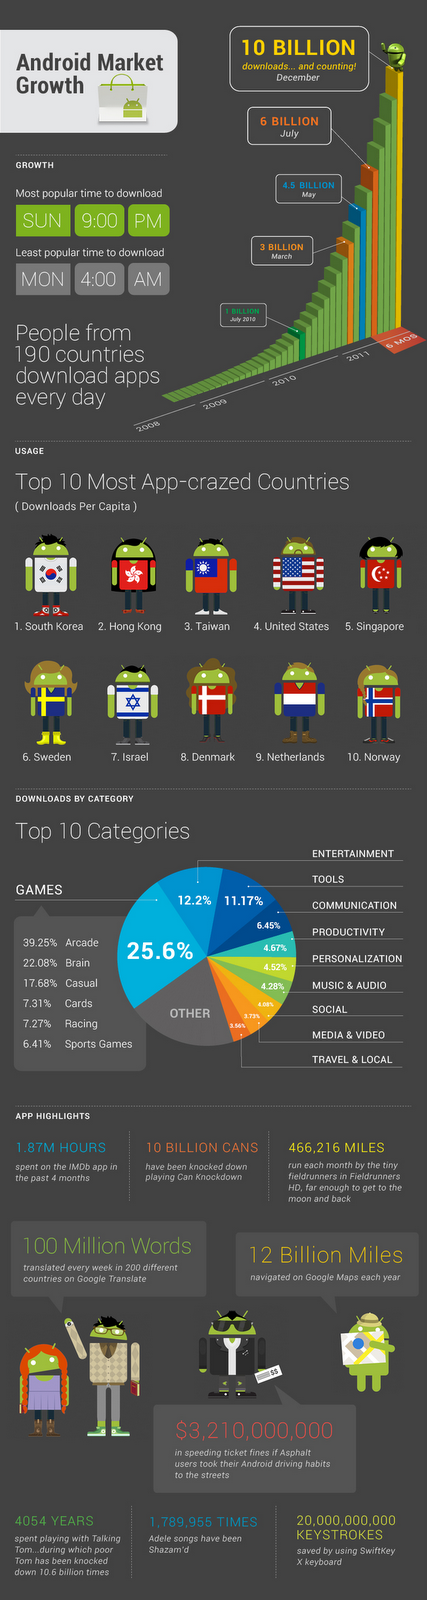 Who gets what at Android Market? [infographic]